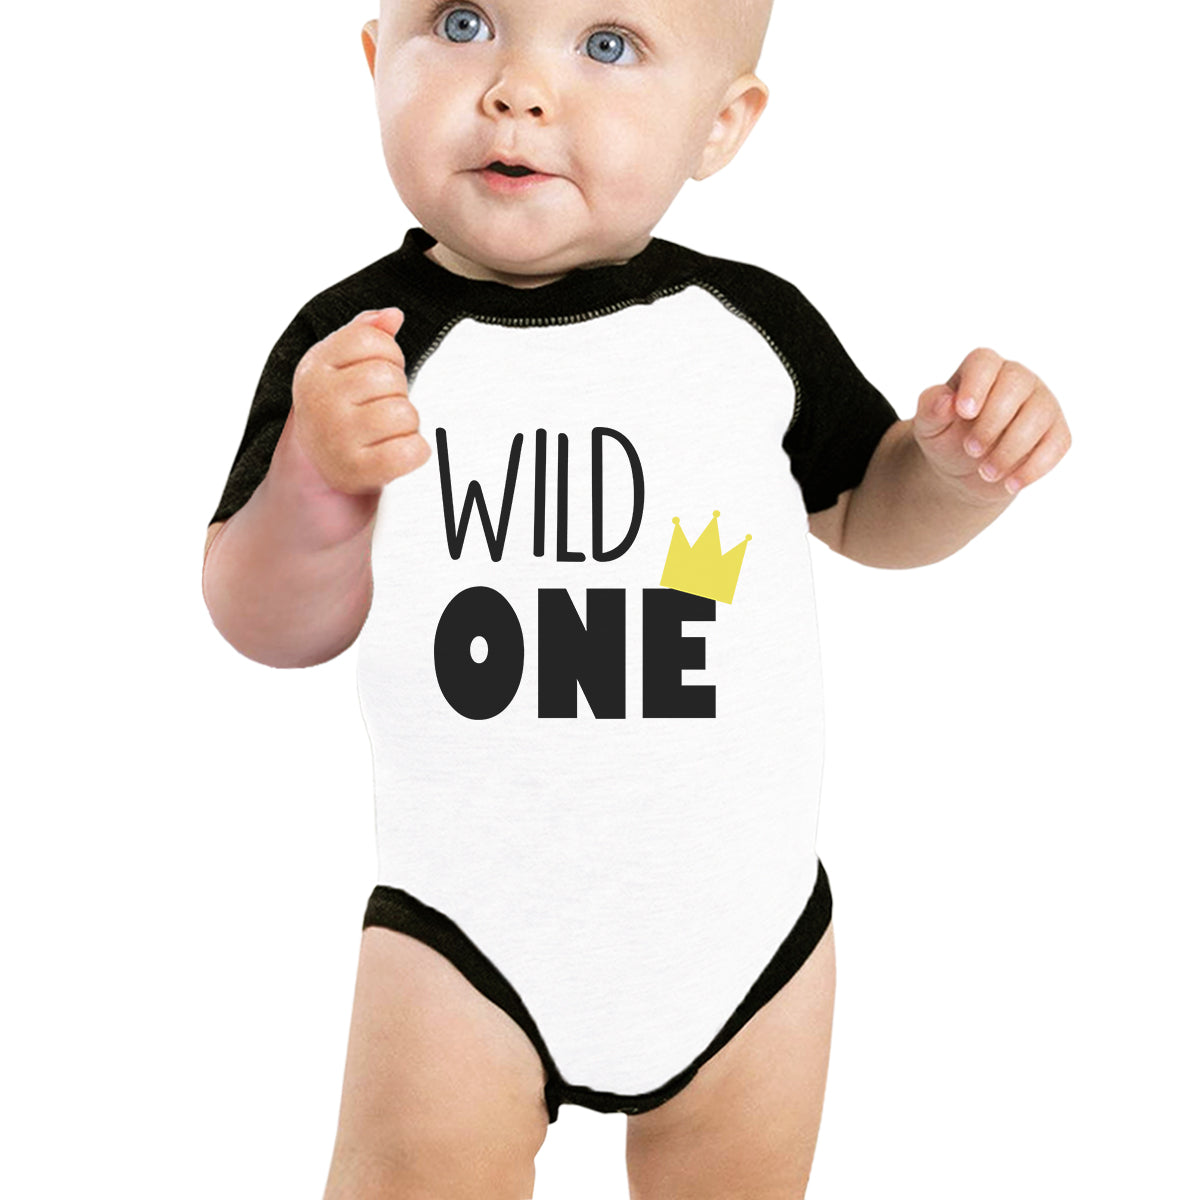 6ee9b524e Wild One Crown Baby Black And White BaseBall Shirt - 365 IN LOVE ...